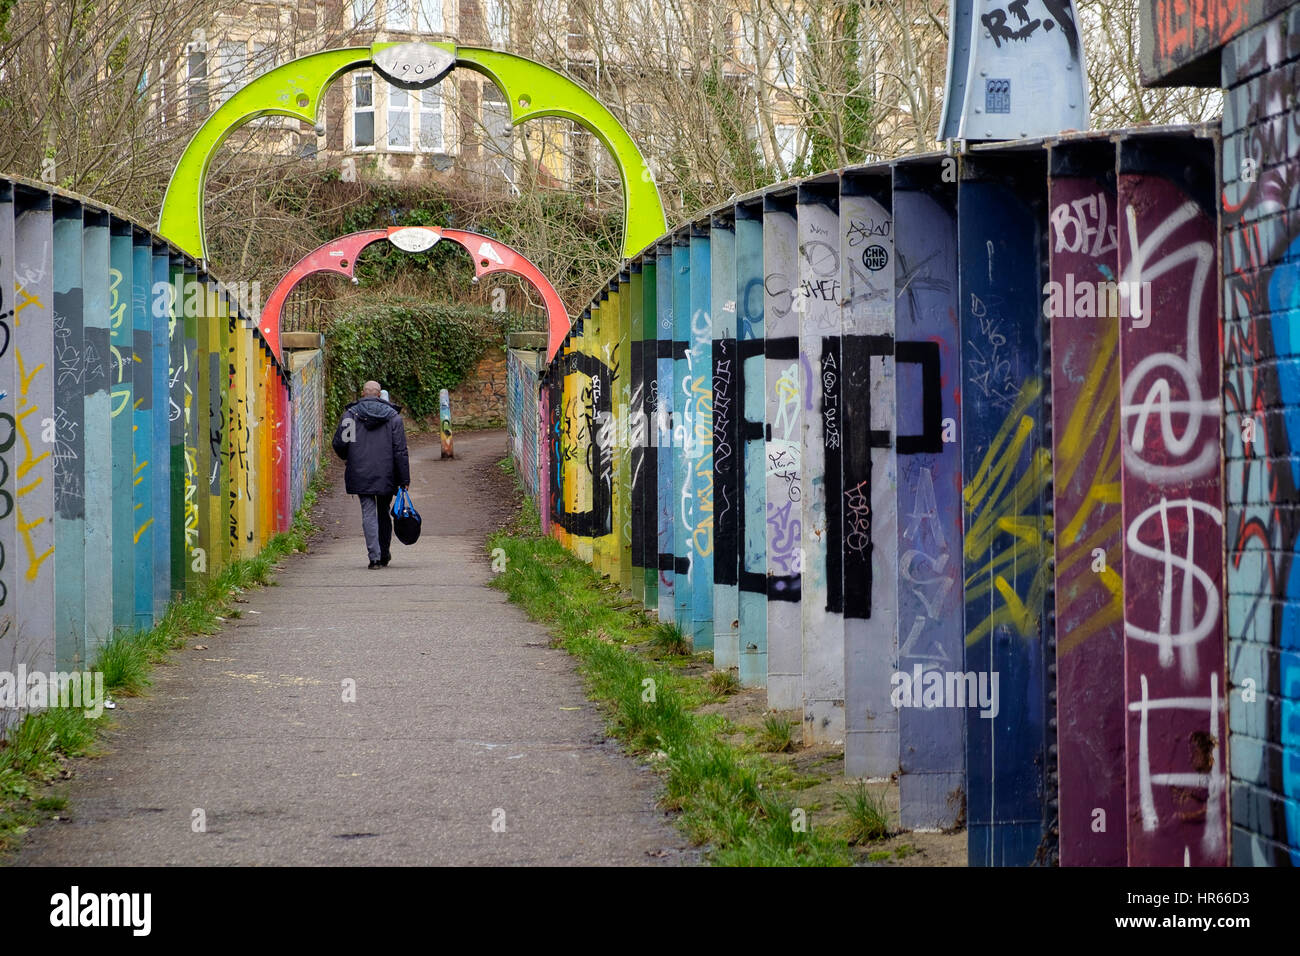 A man walks over a footbridge on a railway line in Montpelier, Bristol that is adorned with colourful streetart - Stock Image